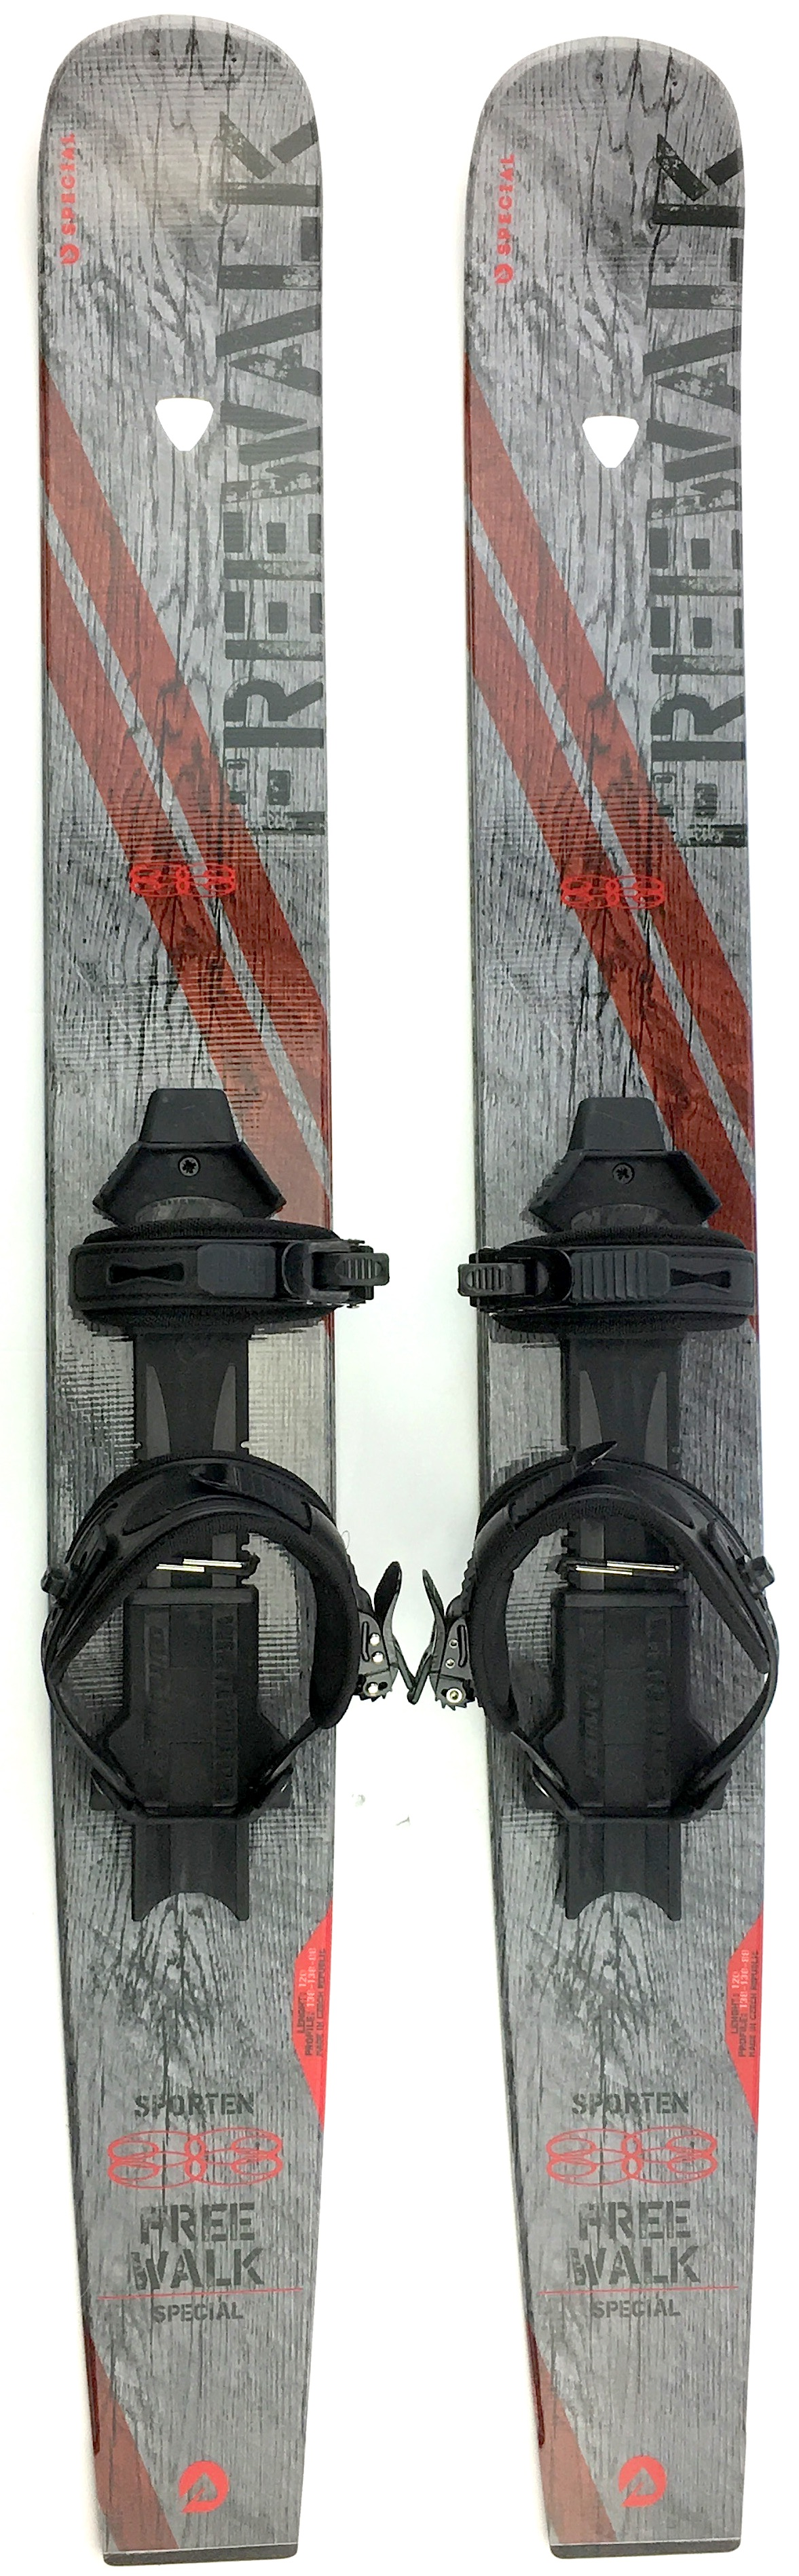 Sporten Free Walk Backcountry XC Skiboards with Skins